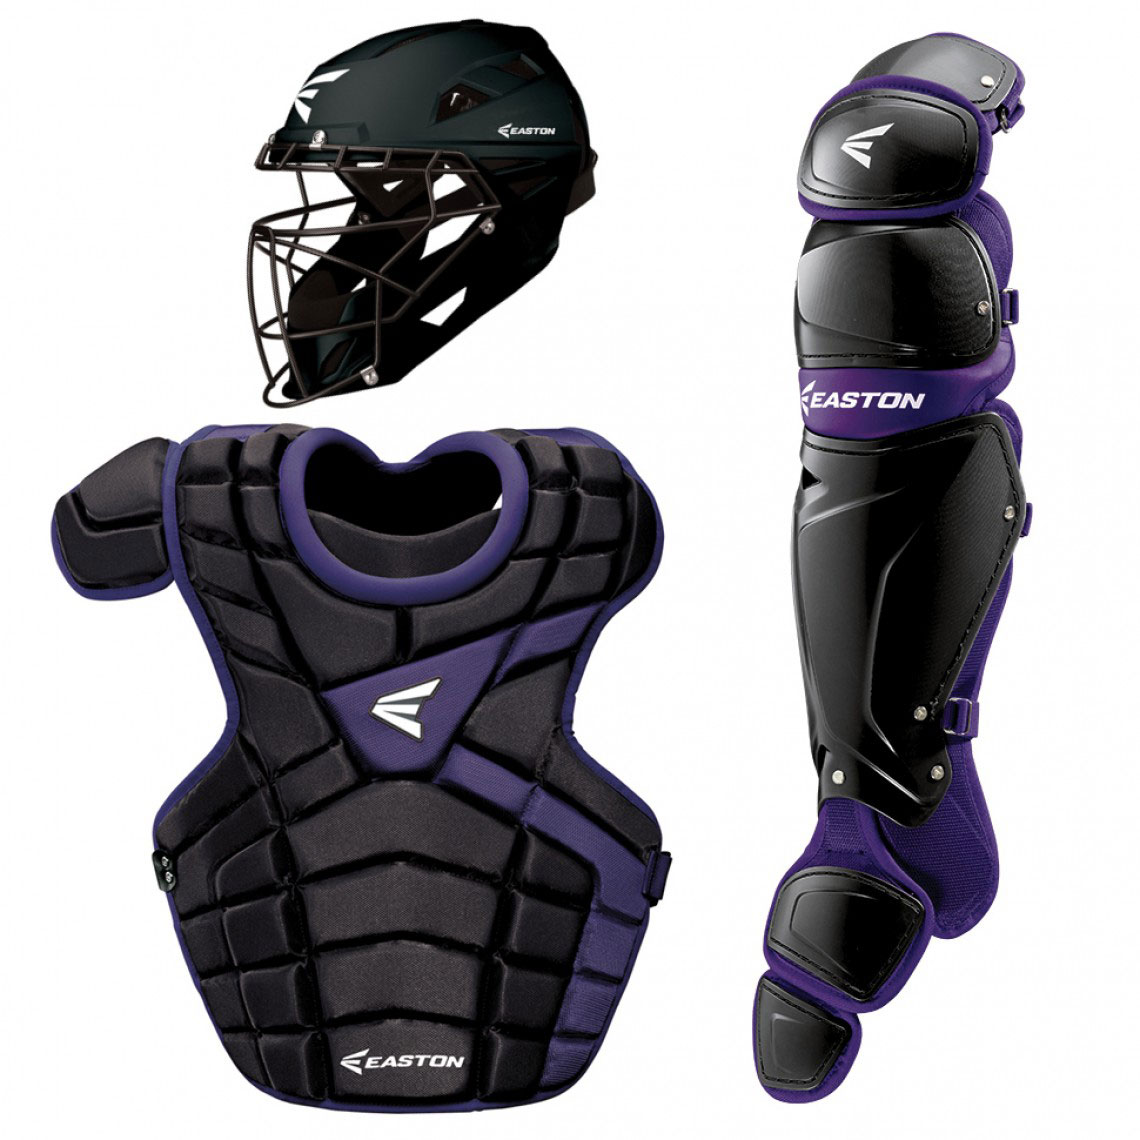 Easton M10 Youth Baseball Catchers Equipment Set - Ages 9-12